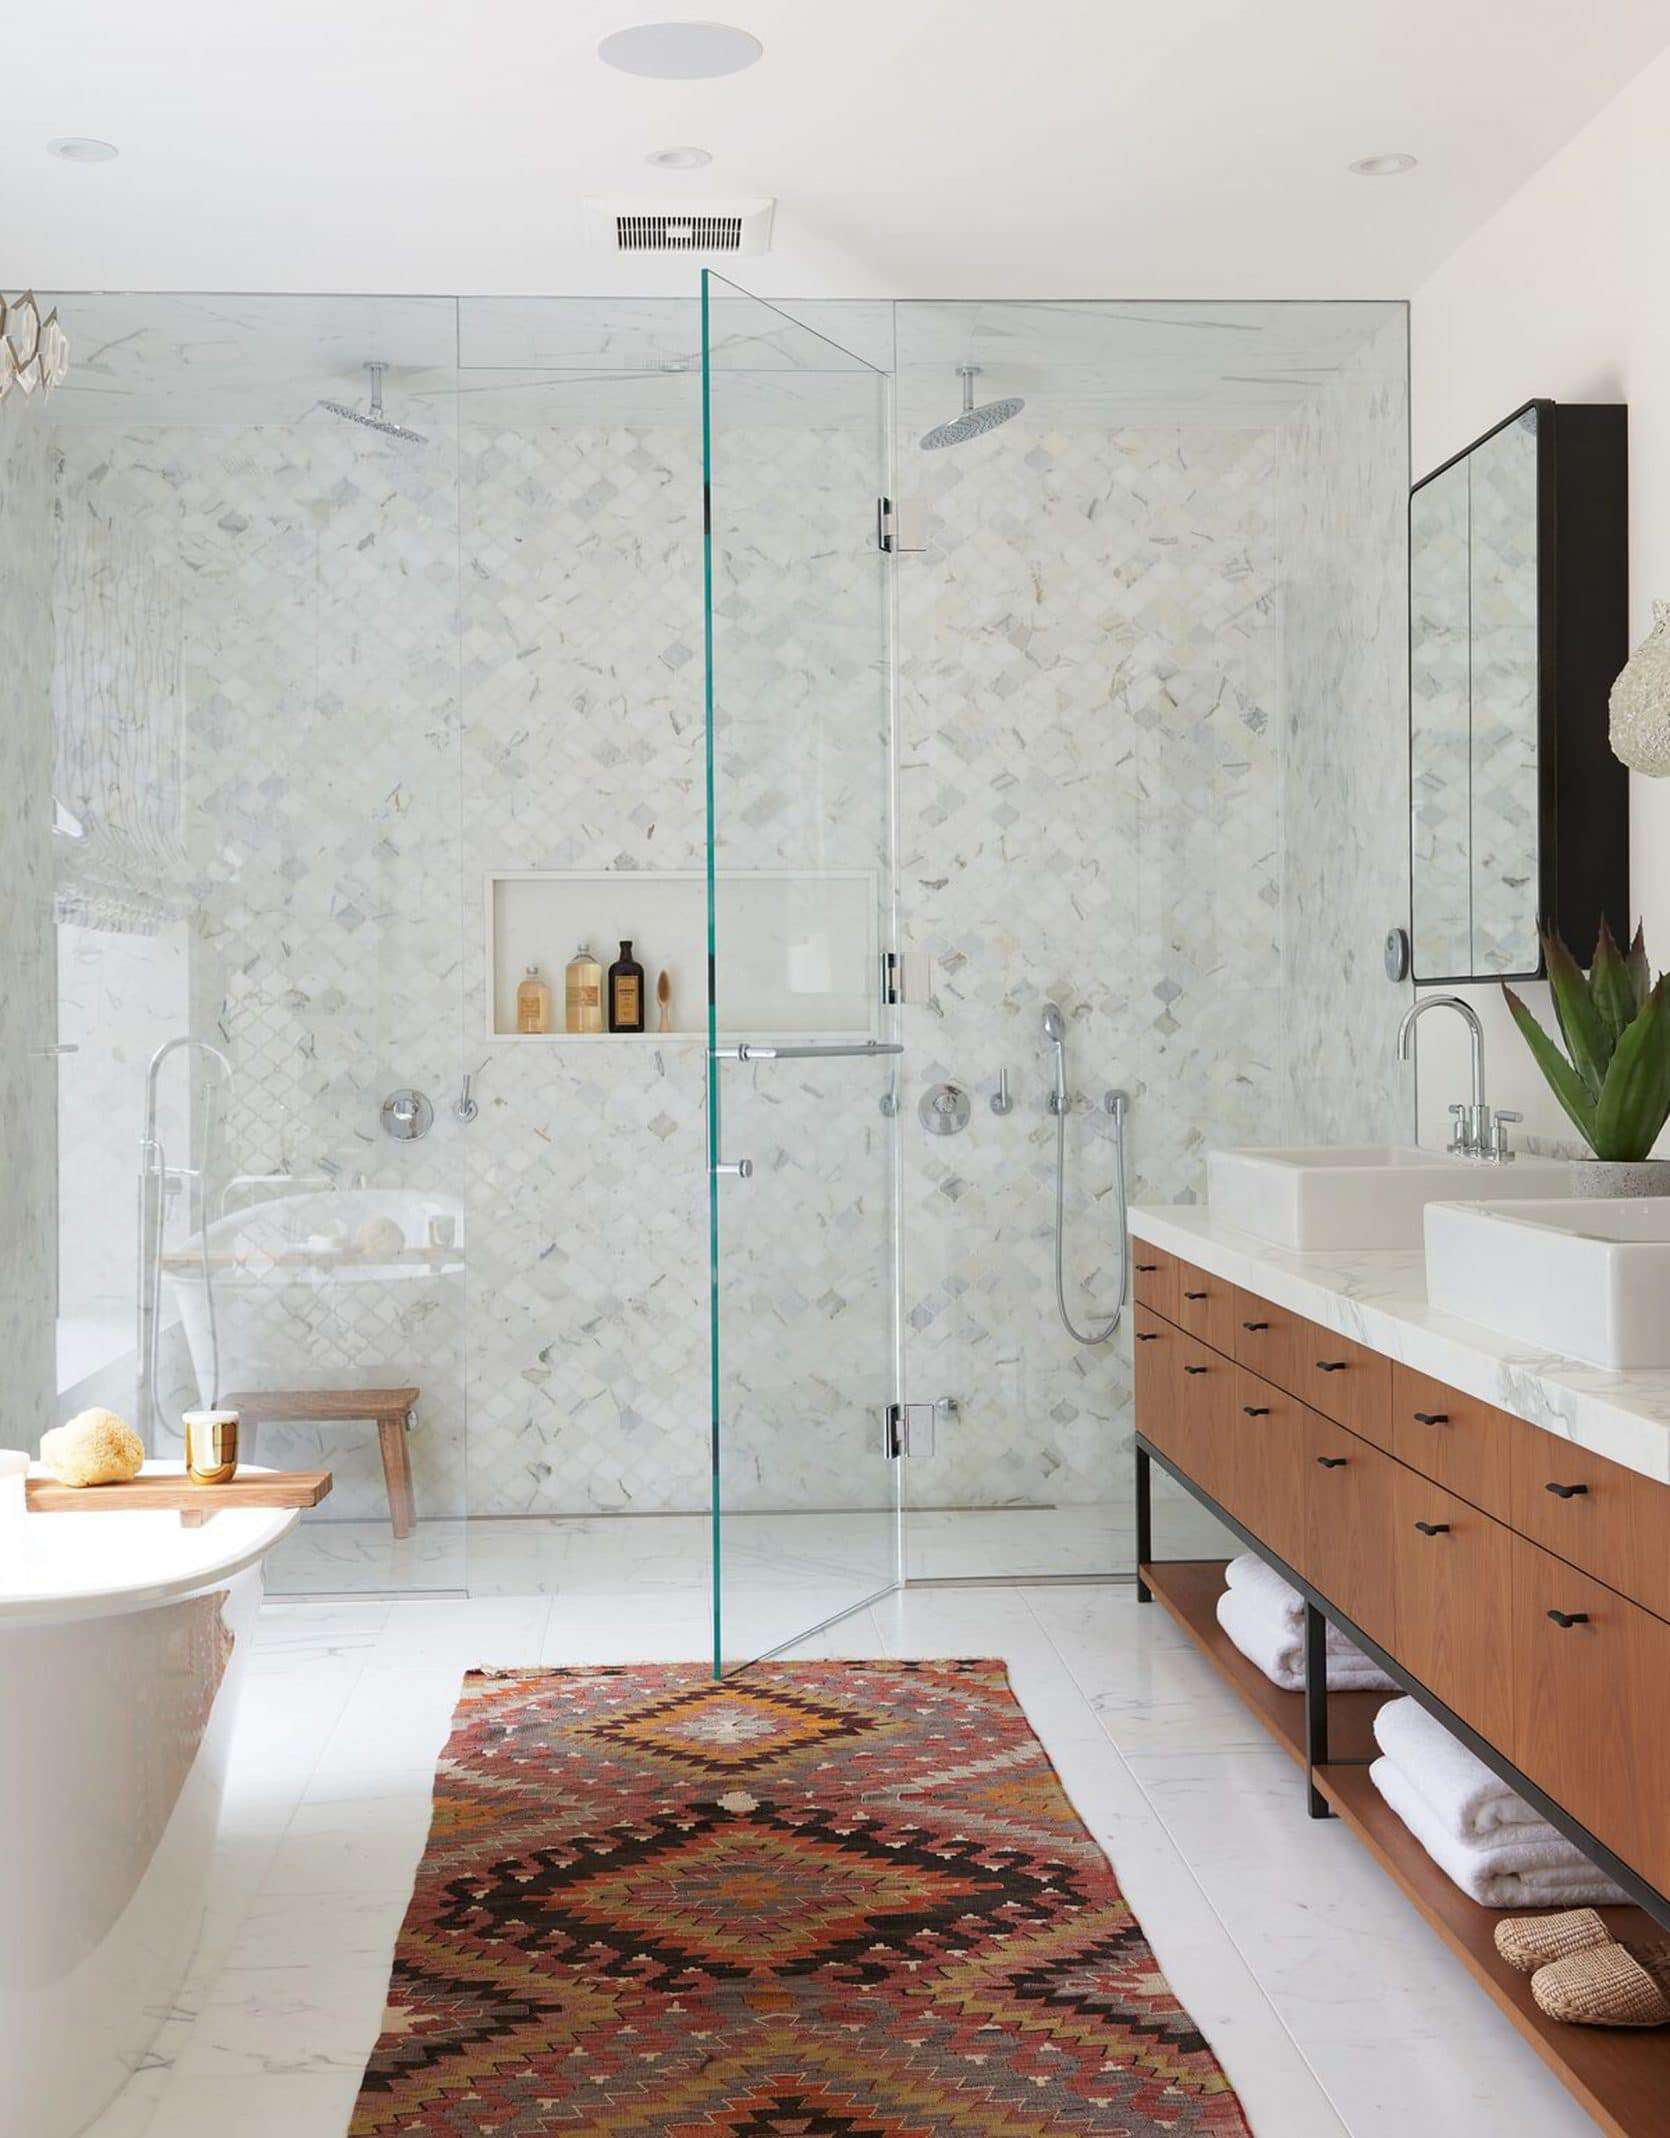 10 Of The Most Exciting Bathroom Design Trends For 2019